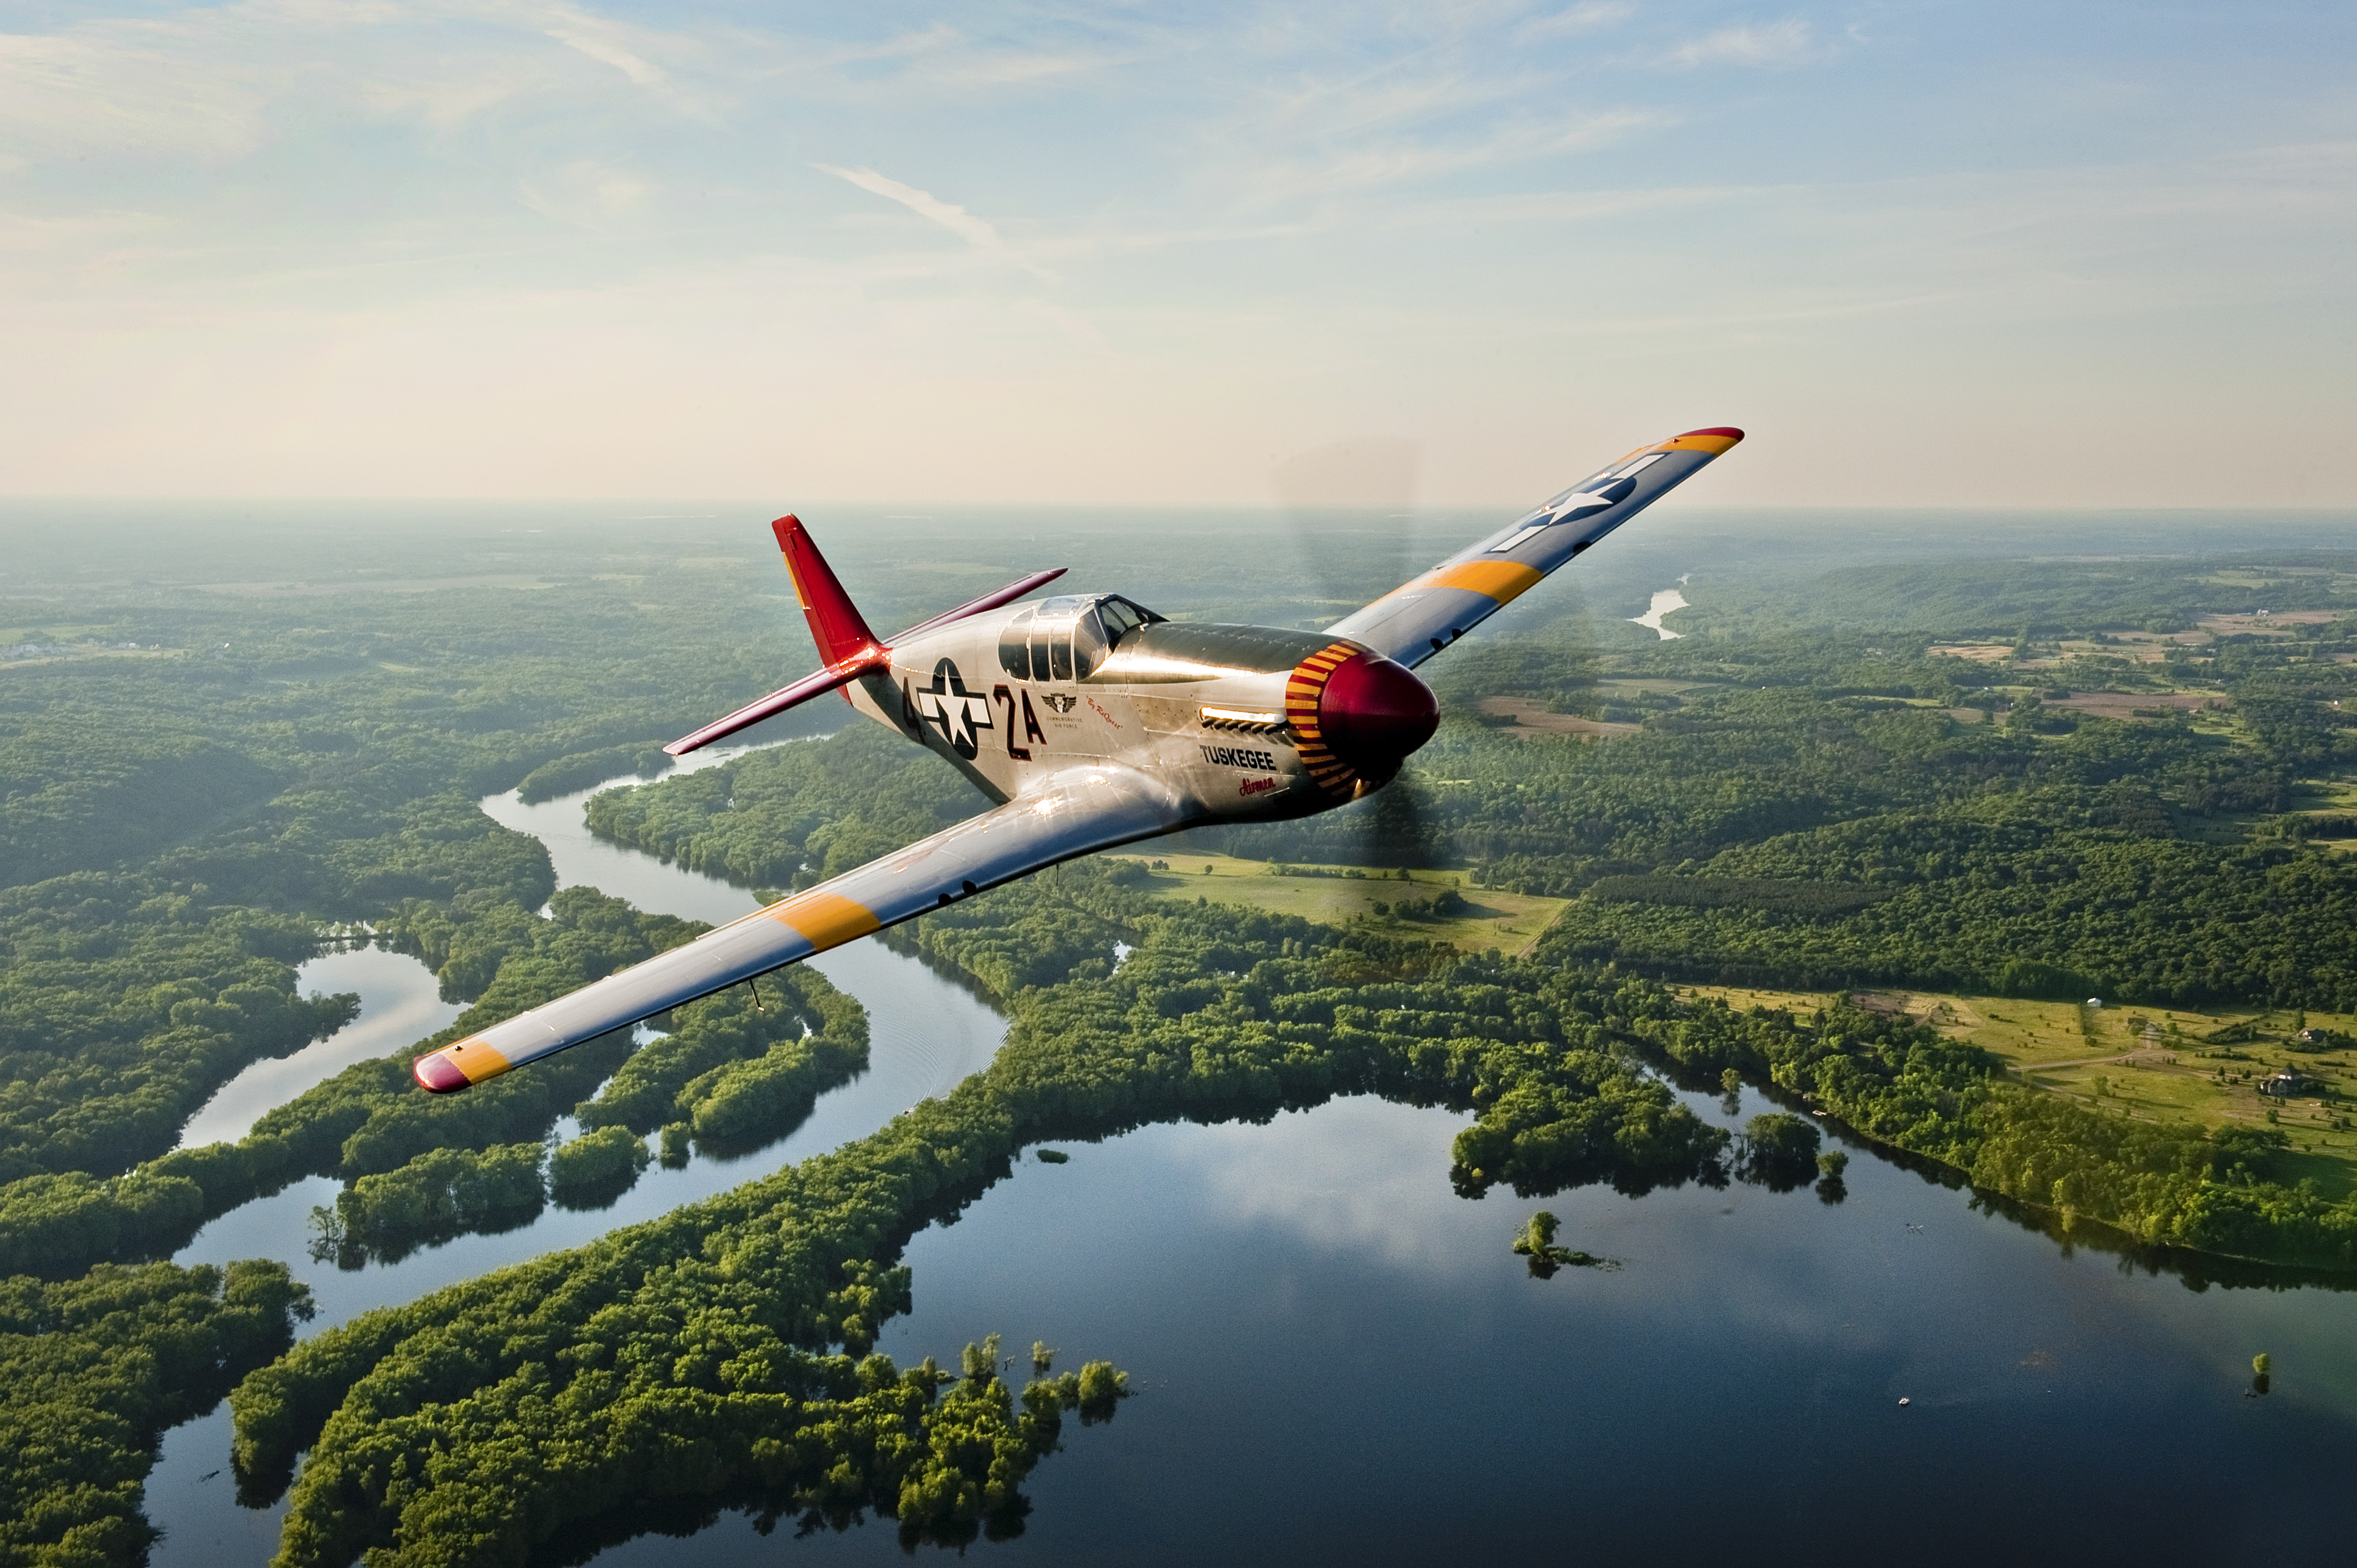 CAF Red Tail Squadron's P-51C